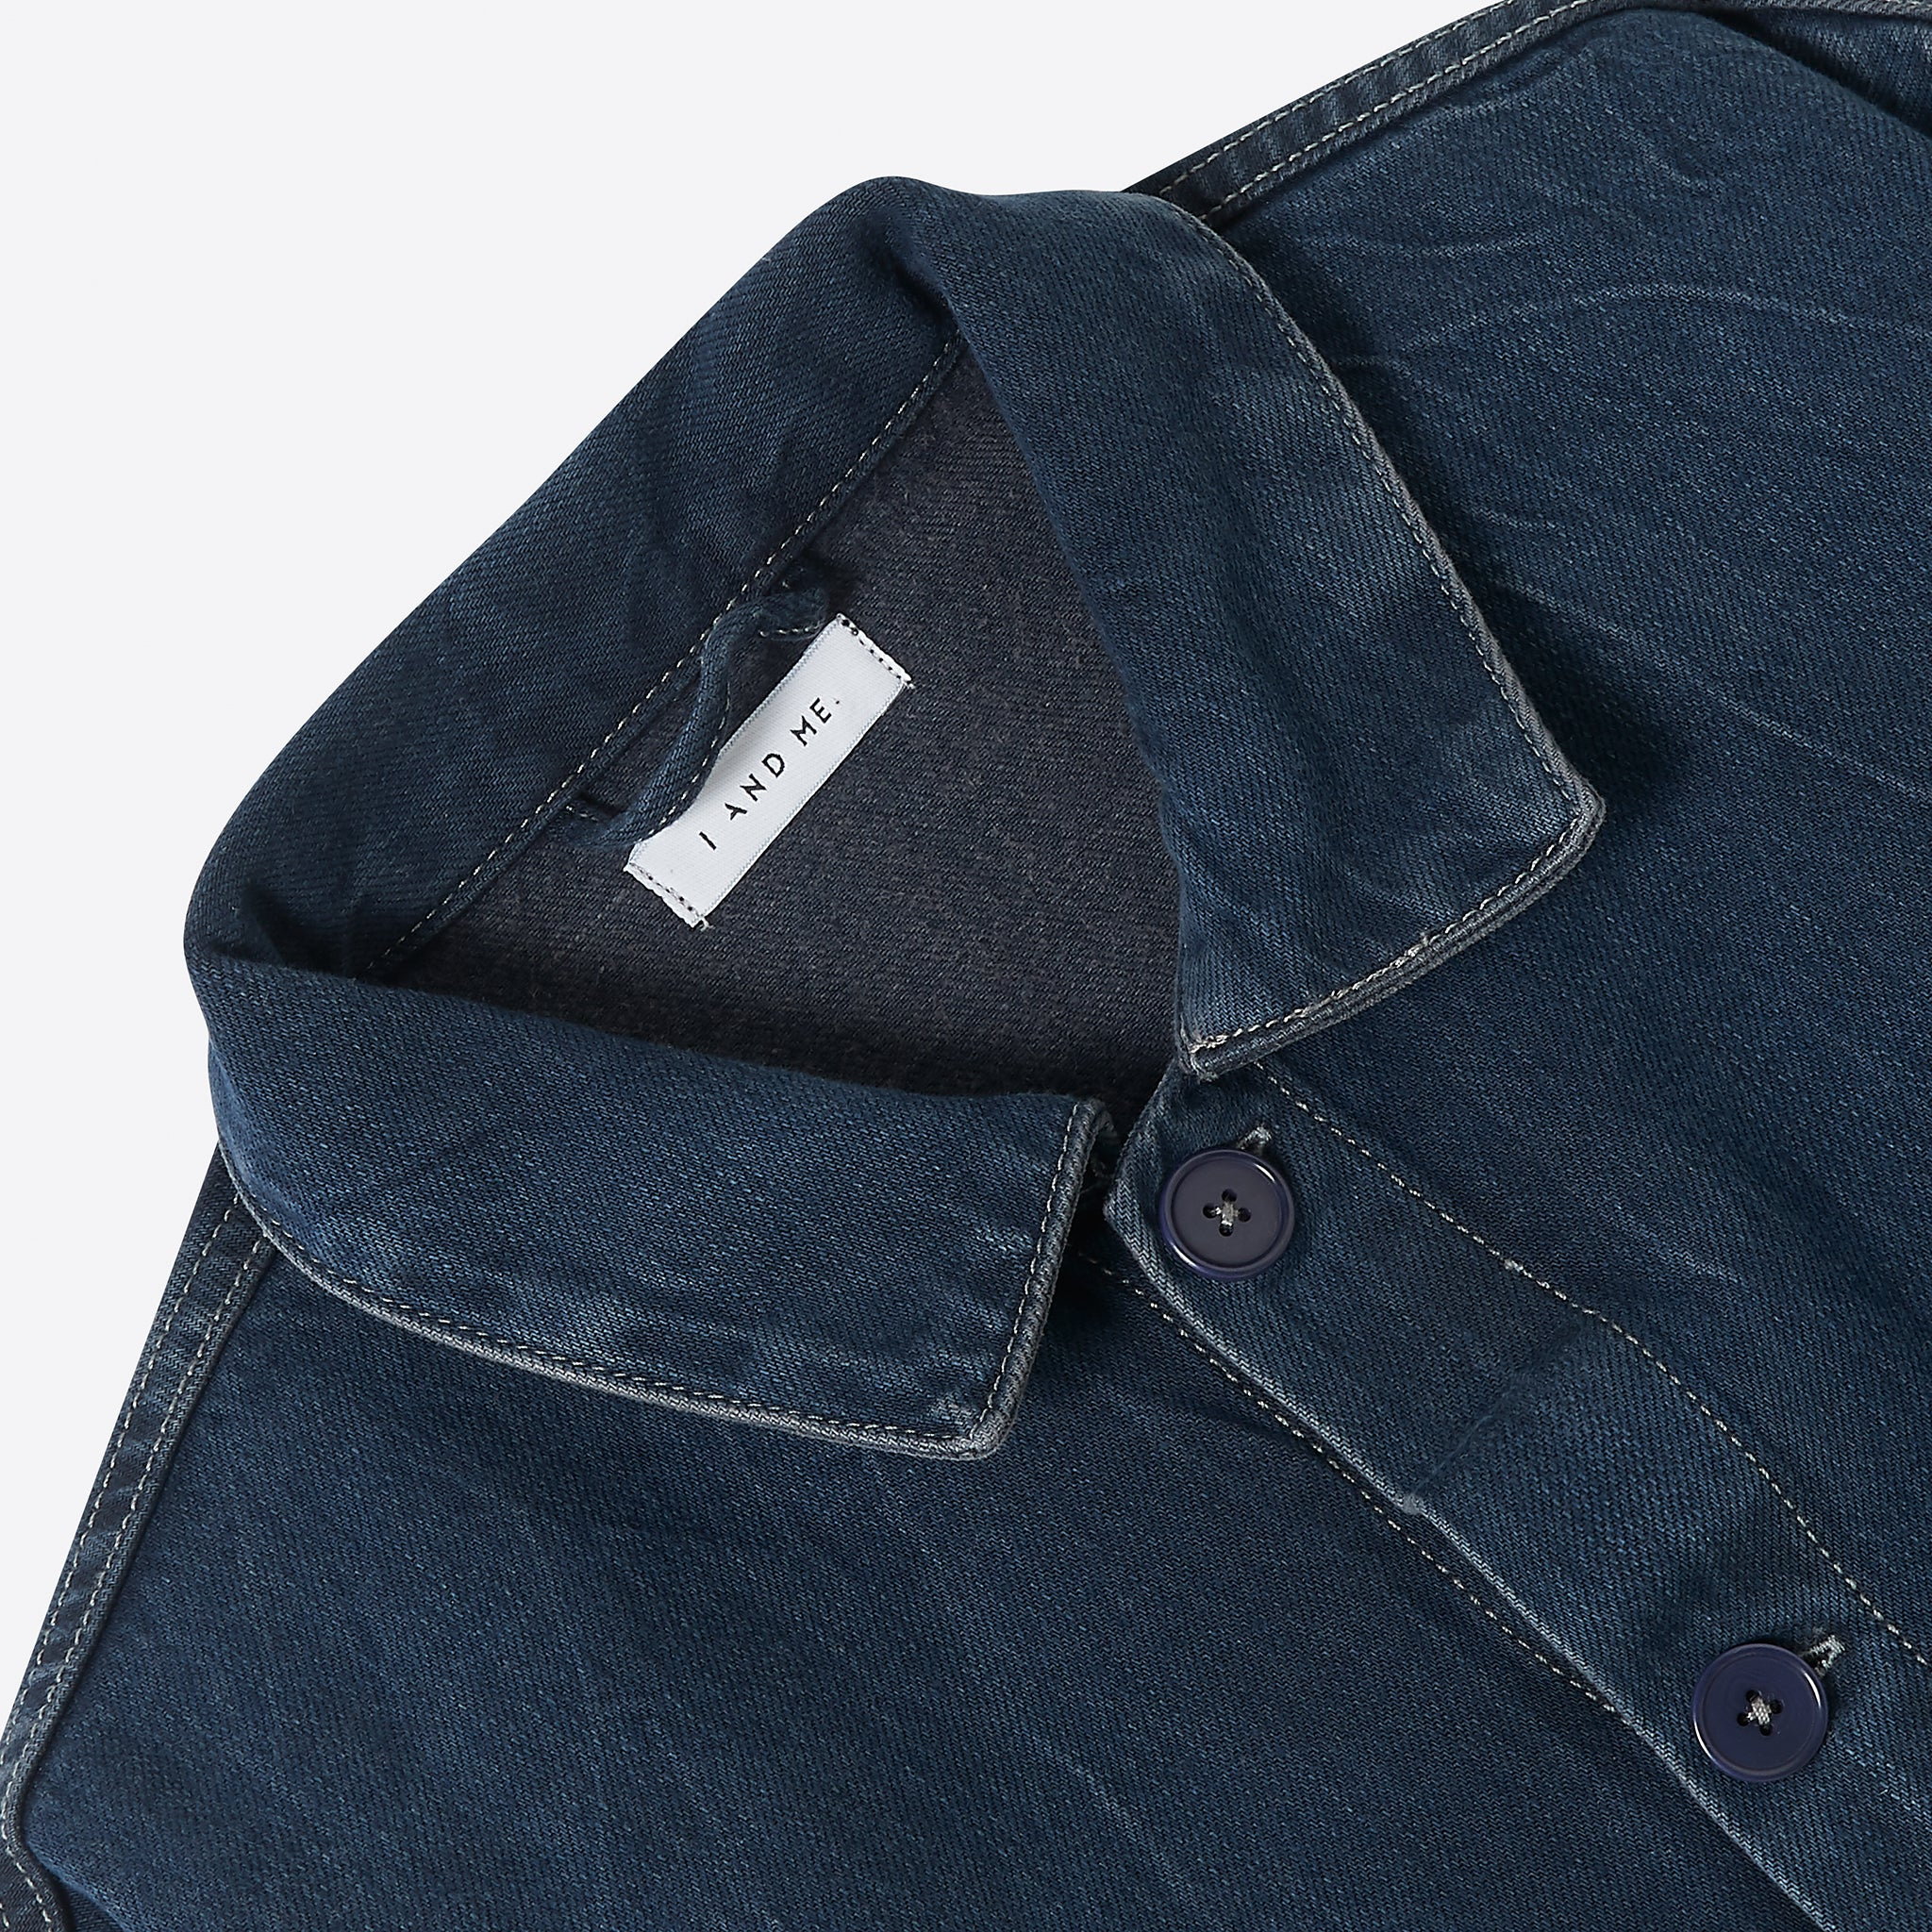 I AND ME Worker Chore Jacket in Indigo